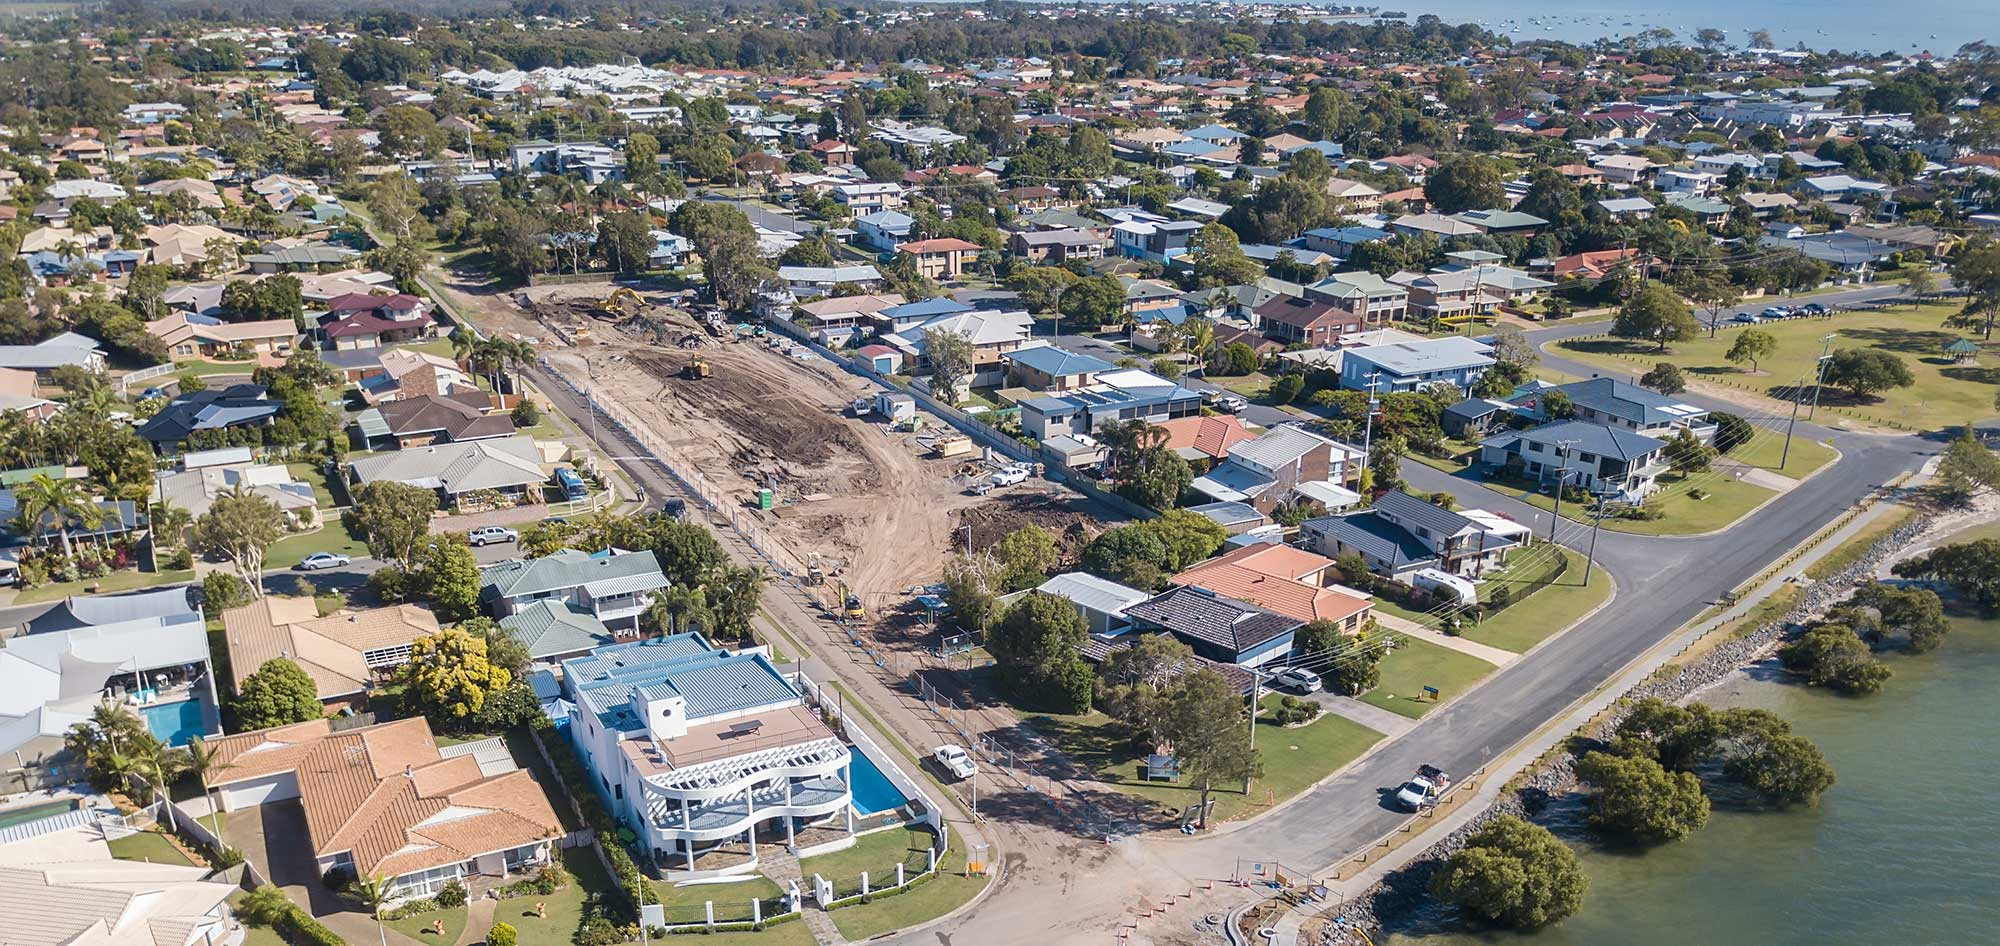 Simon St Victoria Point land development drone photography from 50 metres above the ground